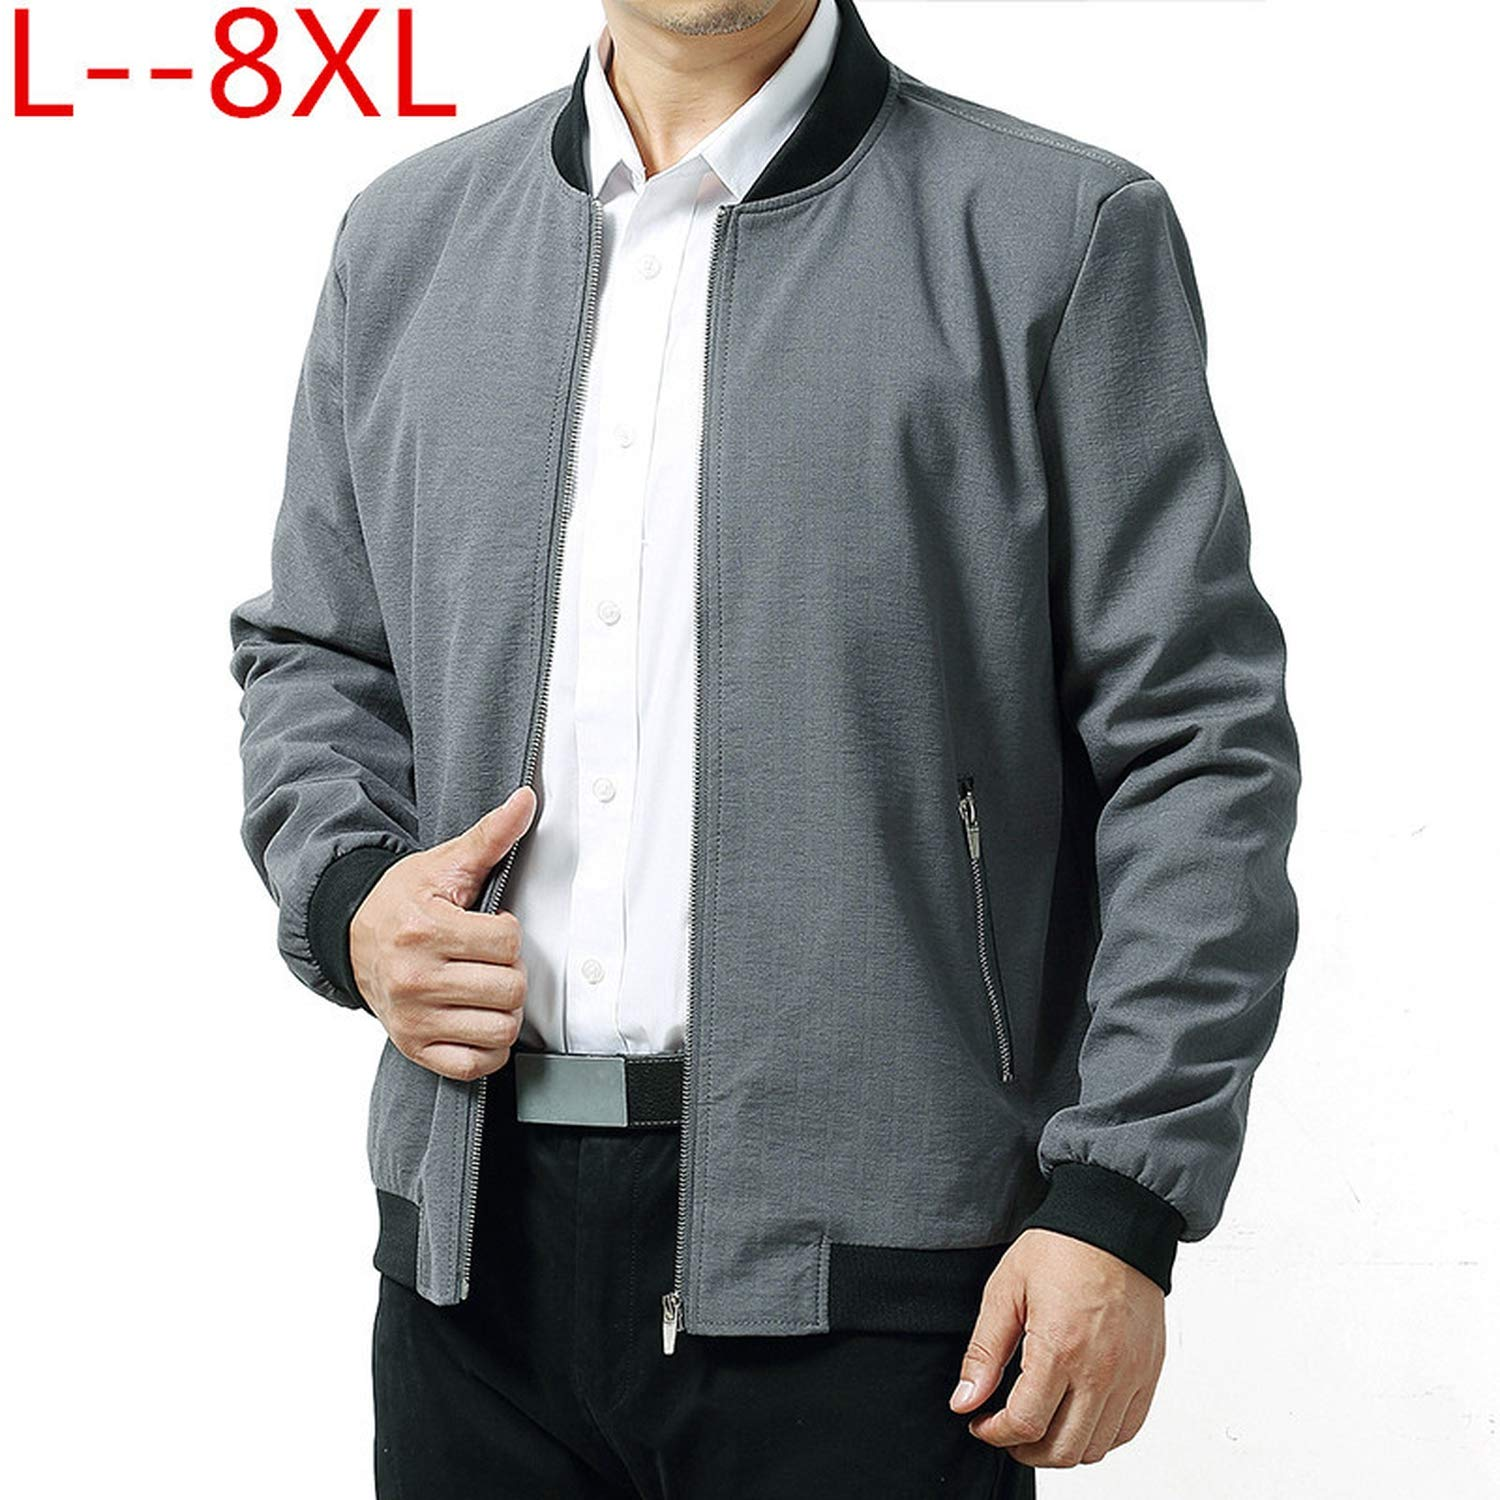 Amazon.com: Piiuiy Yuik Spring Jackets Coat 6XL 8XL 5XL Male ...